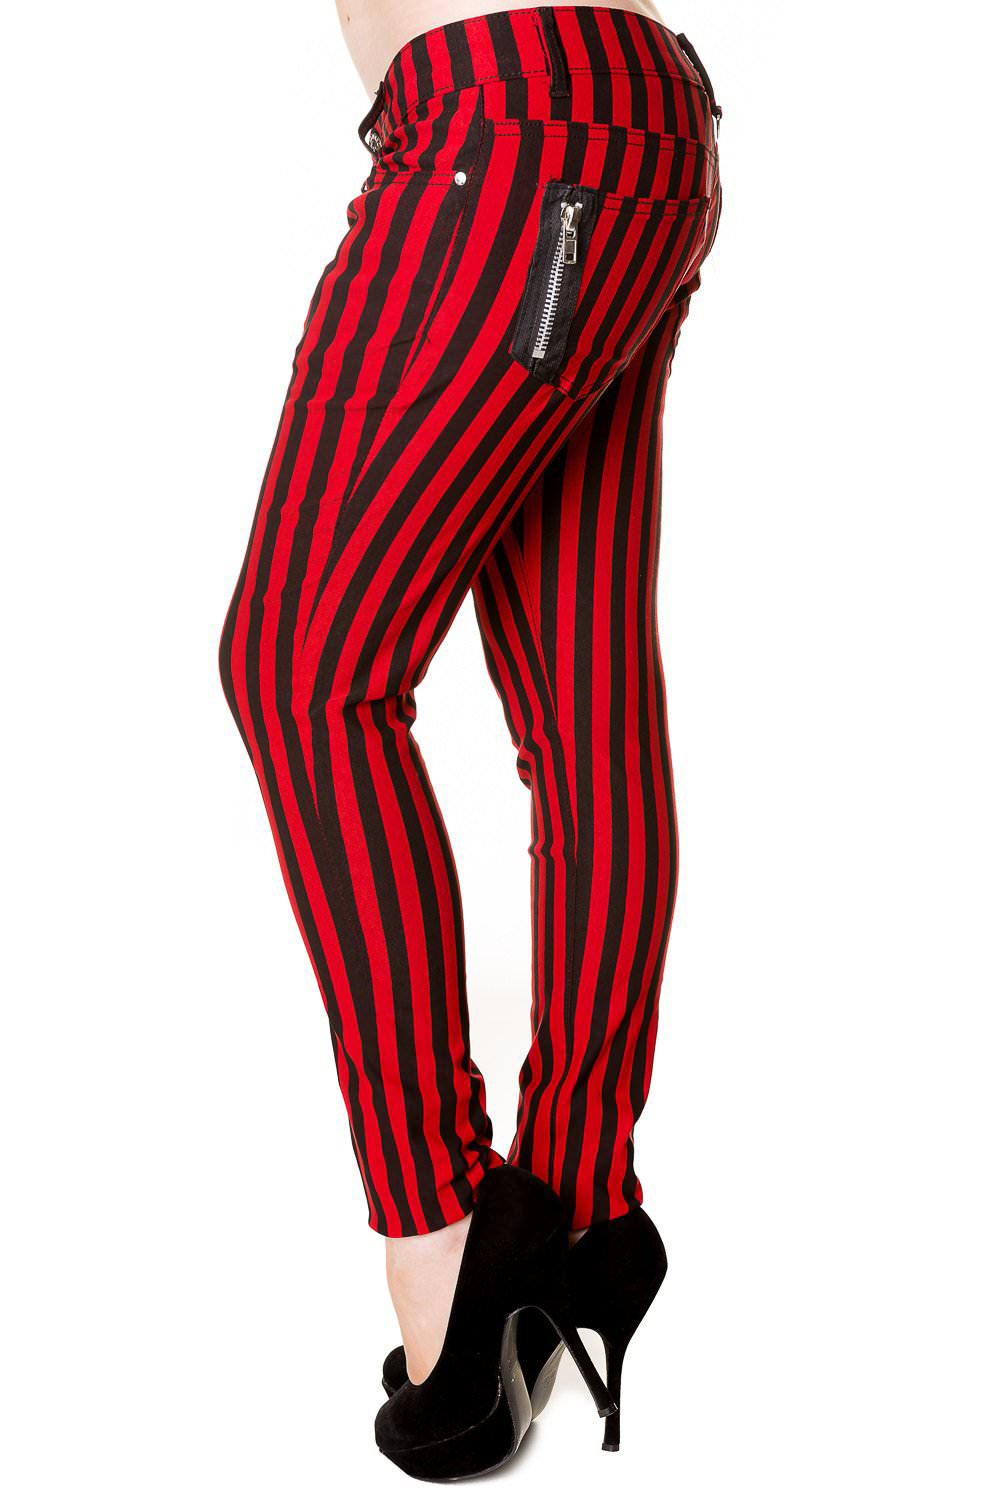 Black & Red Stripe Skinny Jeans by Banned Apparel